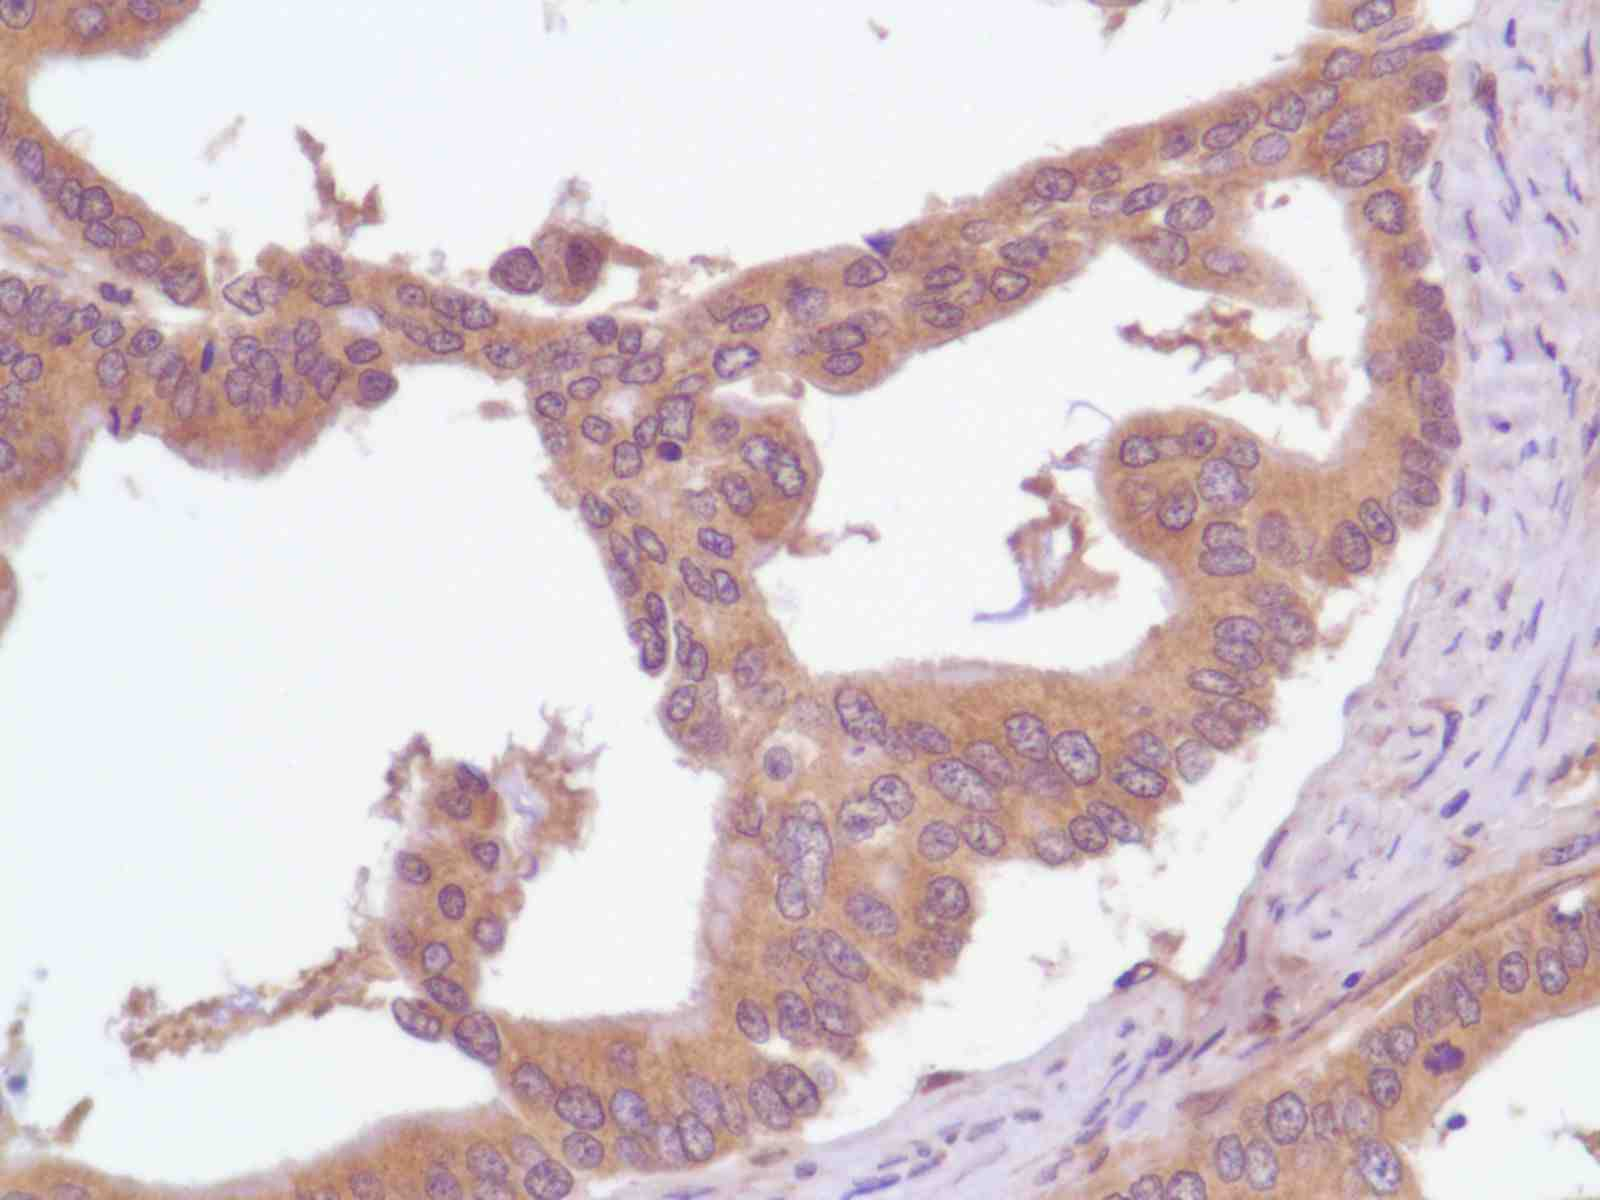 Human Stomach Adenocarcinoma stained with anti-PI3K p85 antibody